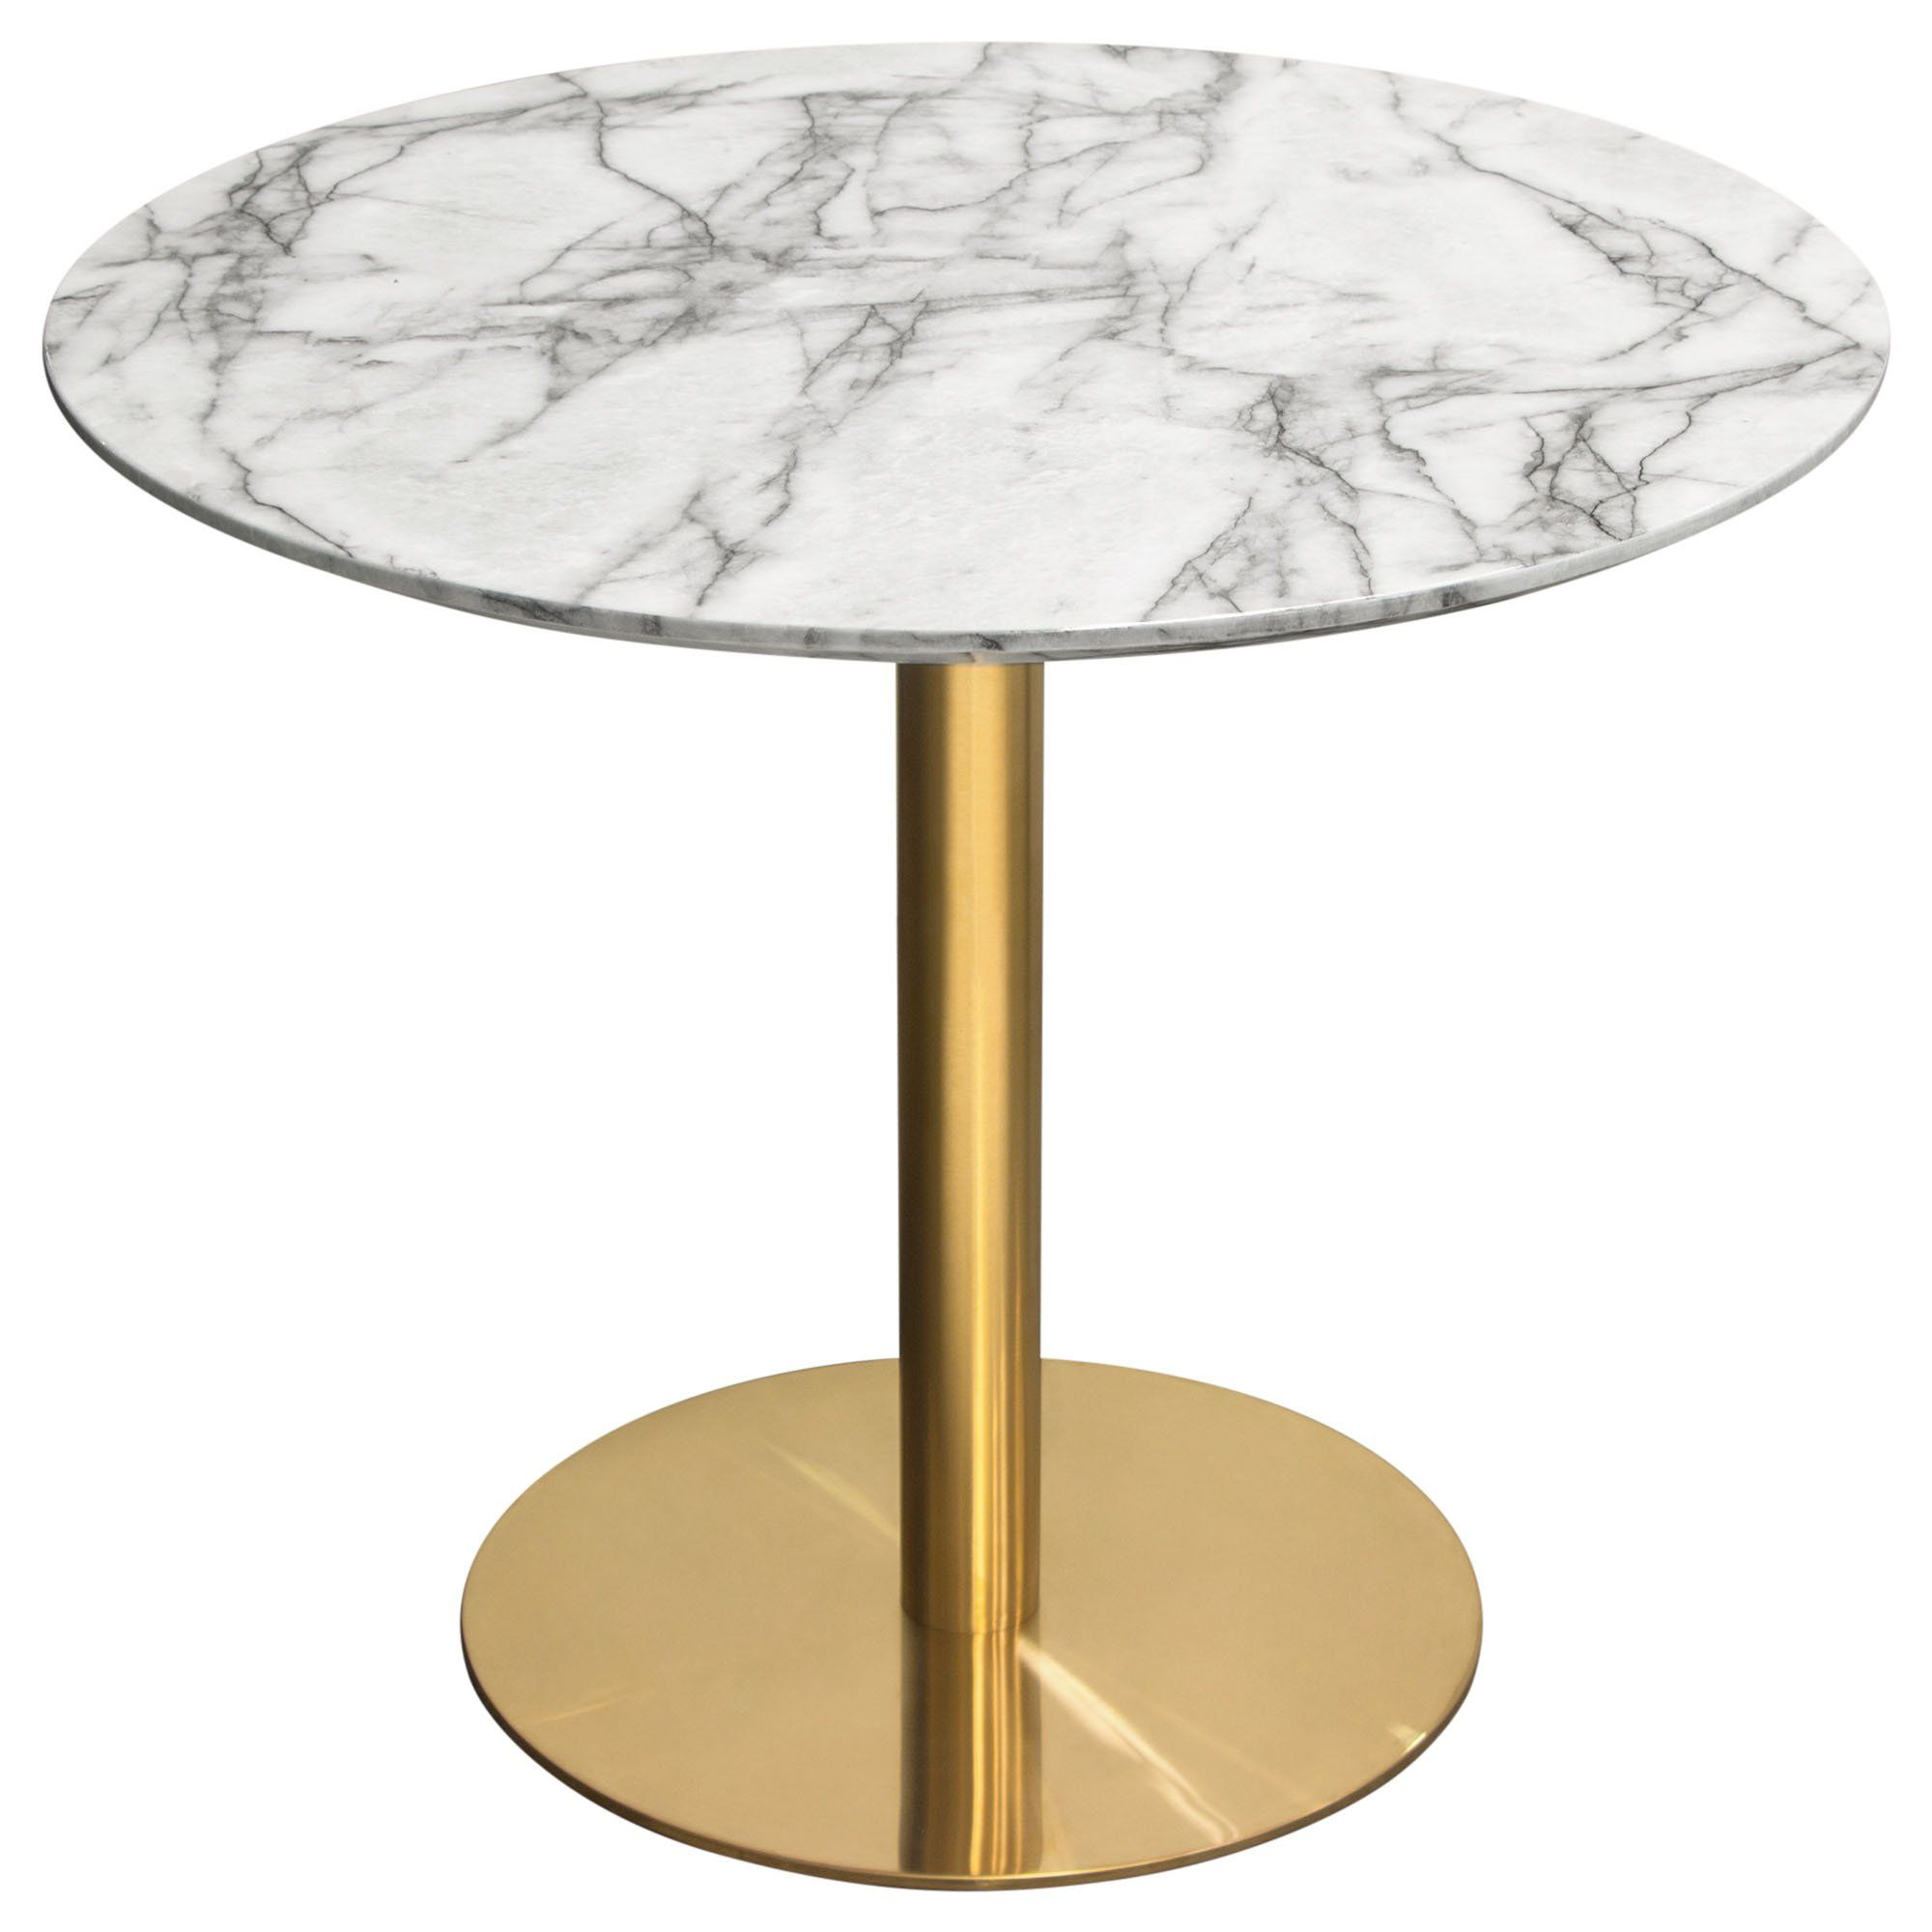 Stella 36 Round Dining Table W Faux Marble Top And Brushed Gold Metal Base By Diamond Sofa In 2021 36 Round Dining Table Dining Table Marble Round Dining Table